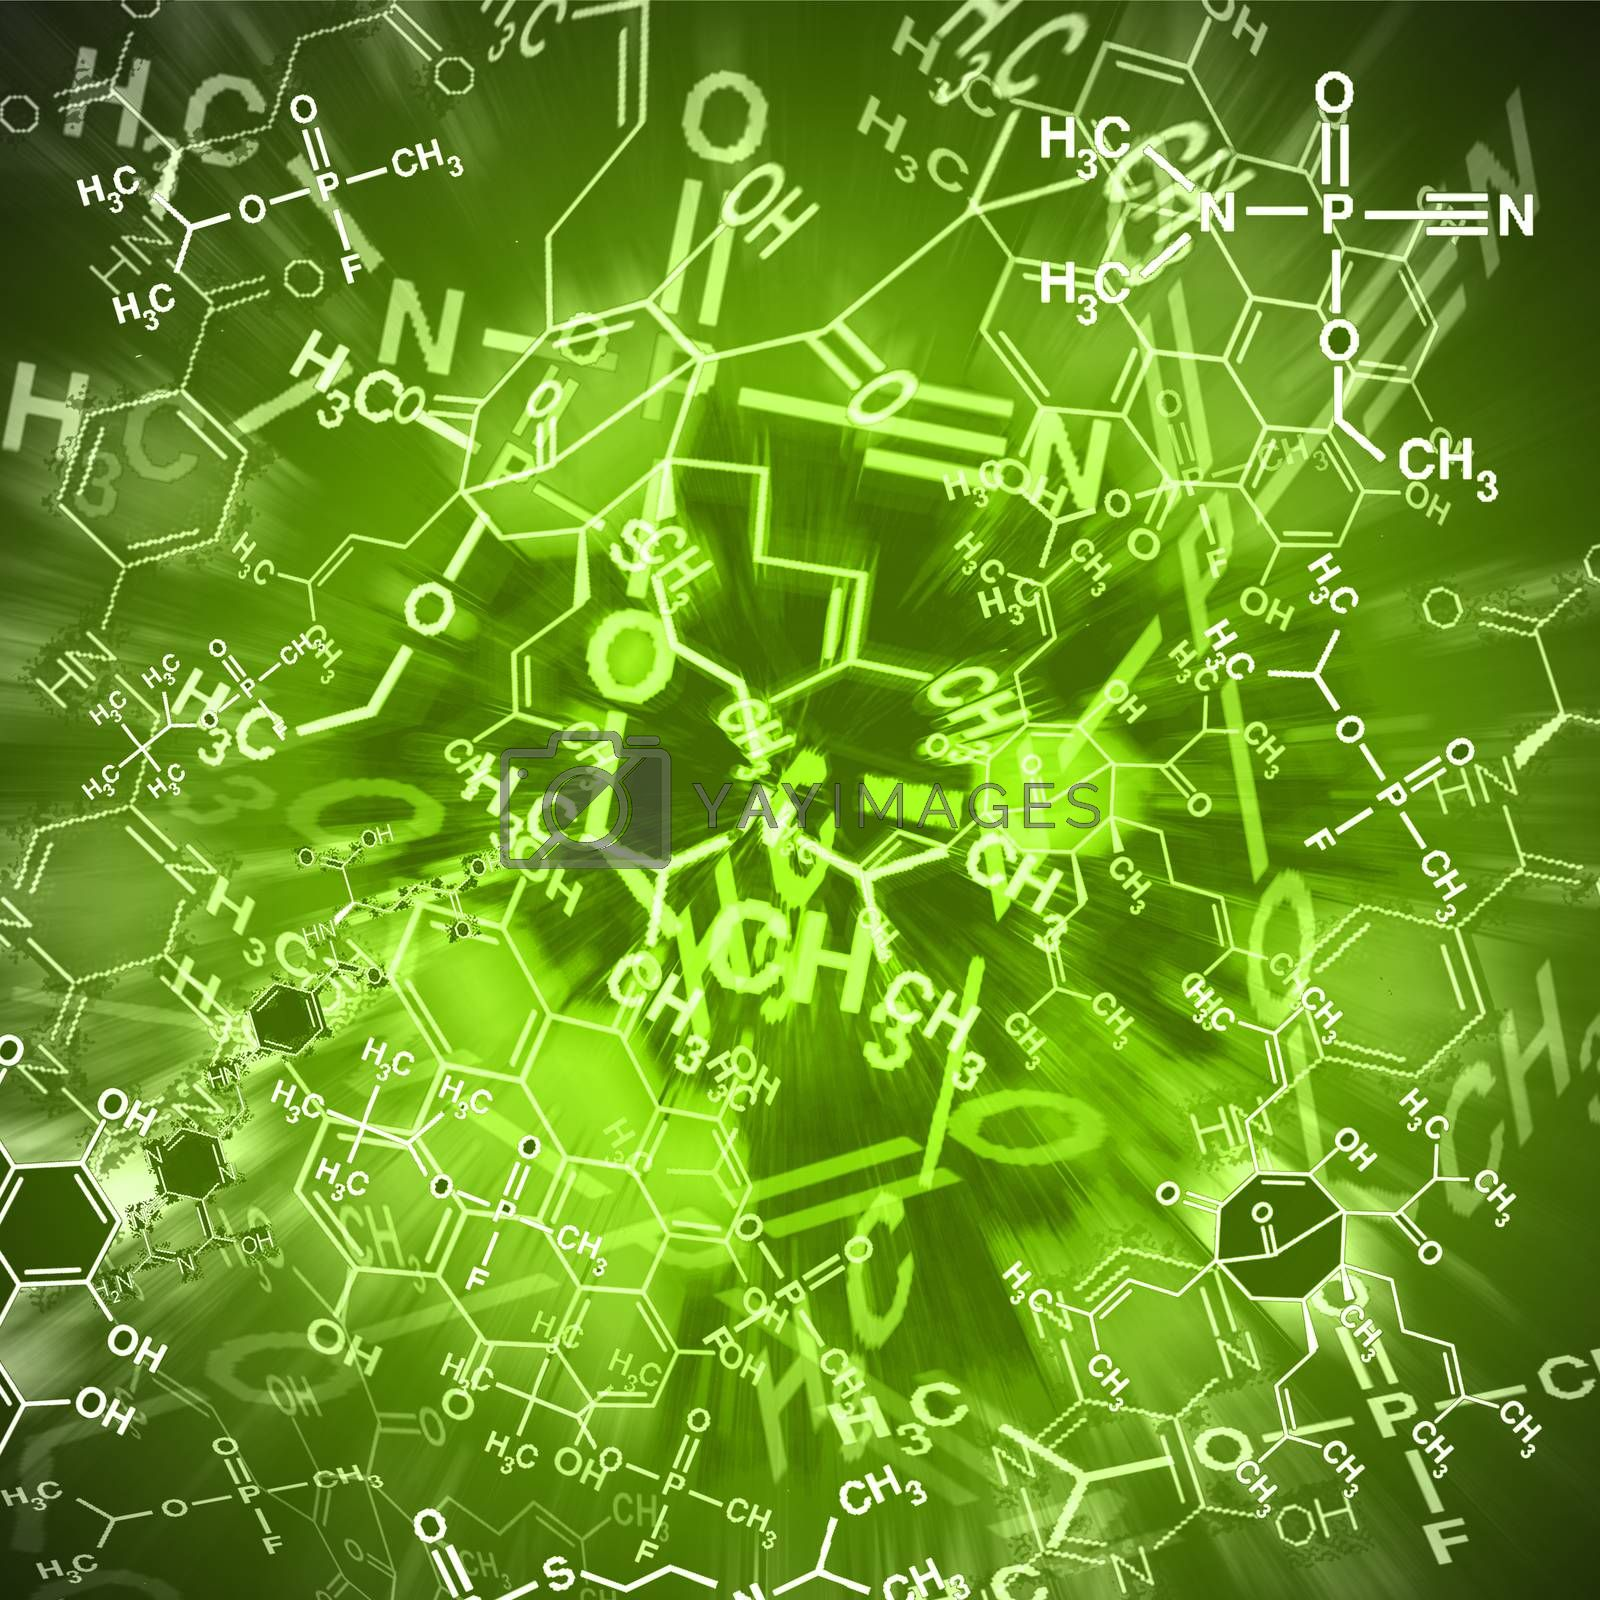 Image of chemical technology abstract background. Science wallpaper with school chemistry formulas and structures. by wektorygrafika